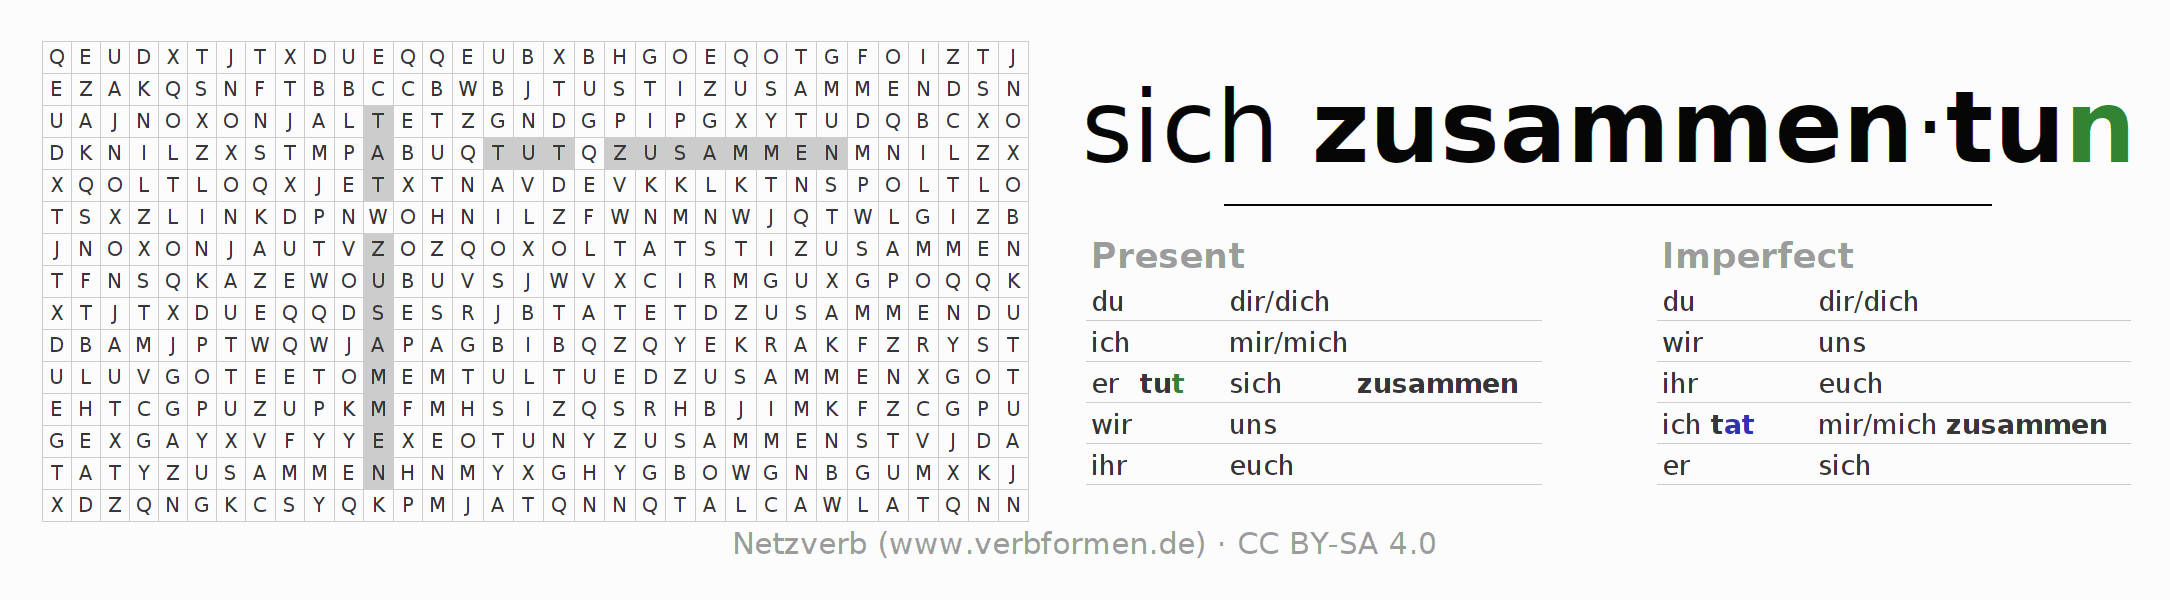 Word search puzzle for the conjugation of the verb sich zusammentun